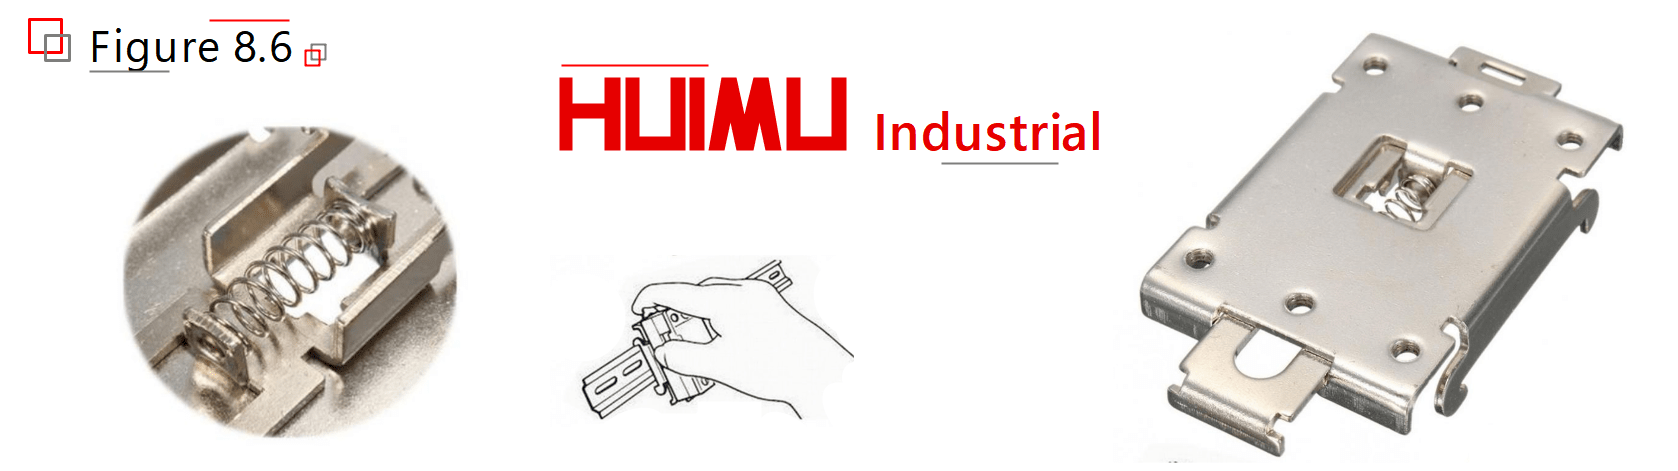 In many cases, the load power will limit whether the SSR is mounted on the PCB, the panel or the DIN rail. More details via www.huimultd.com